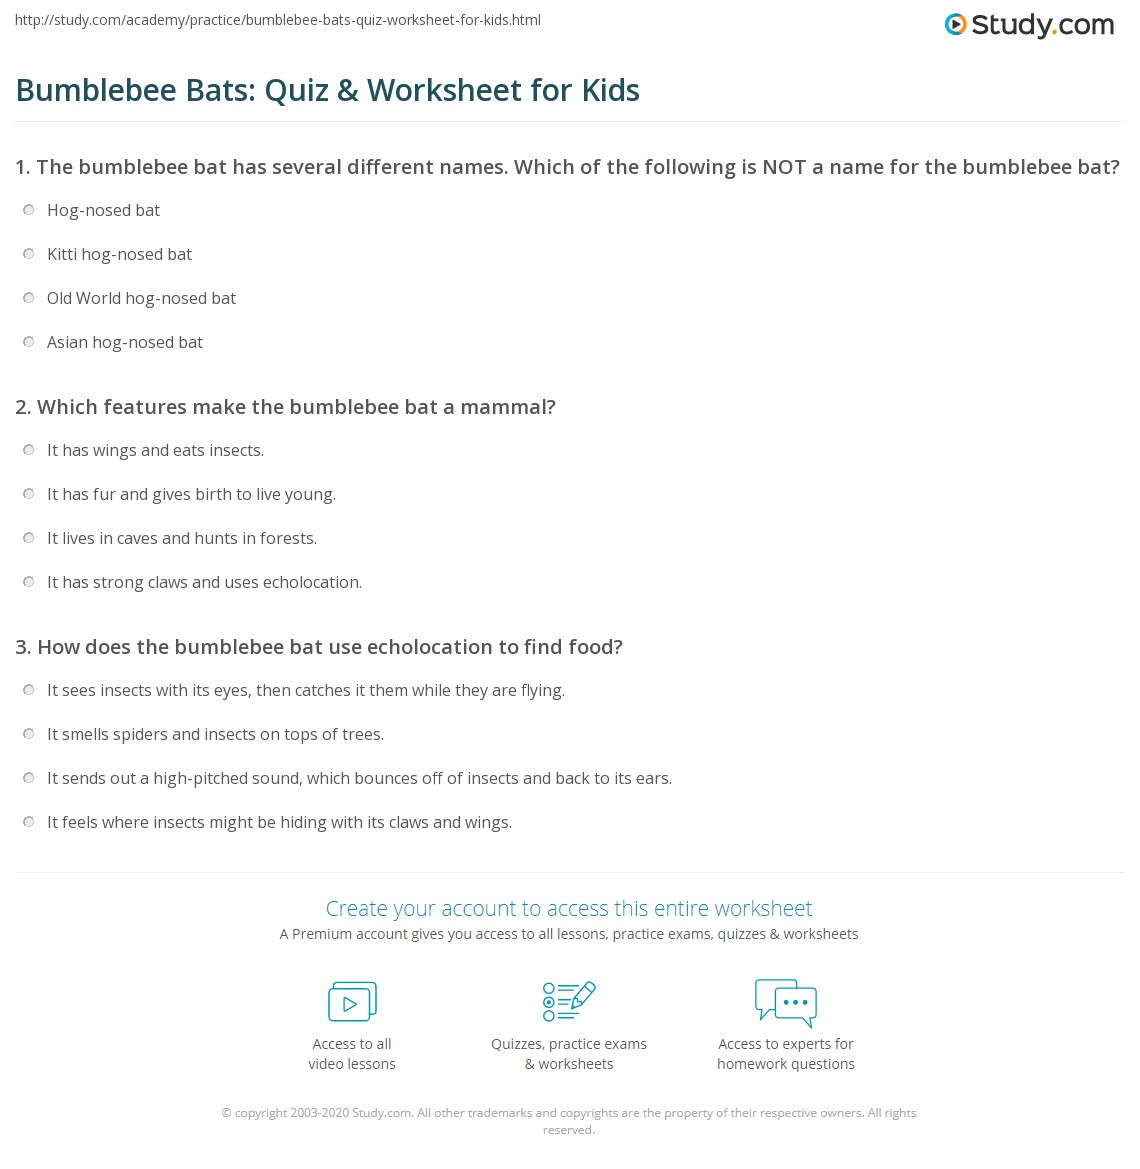 Bumblebee Bats Quiz Amp Worksheet For Kids